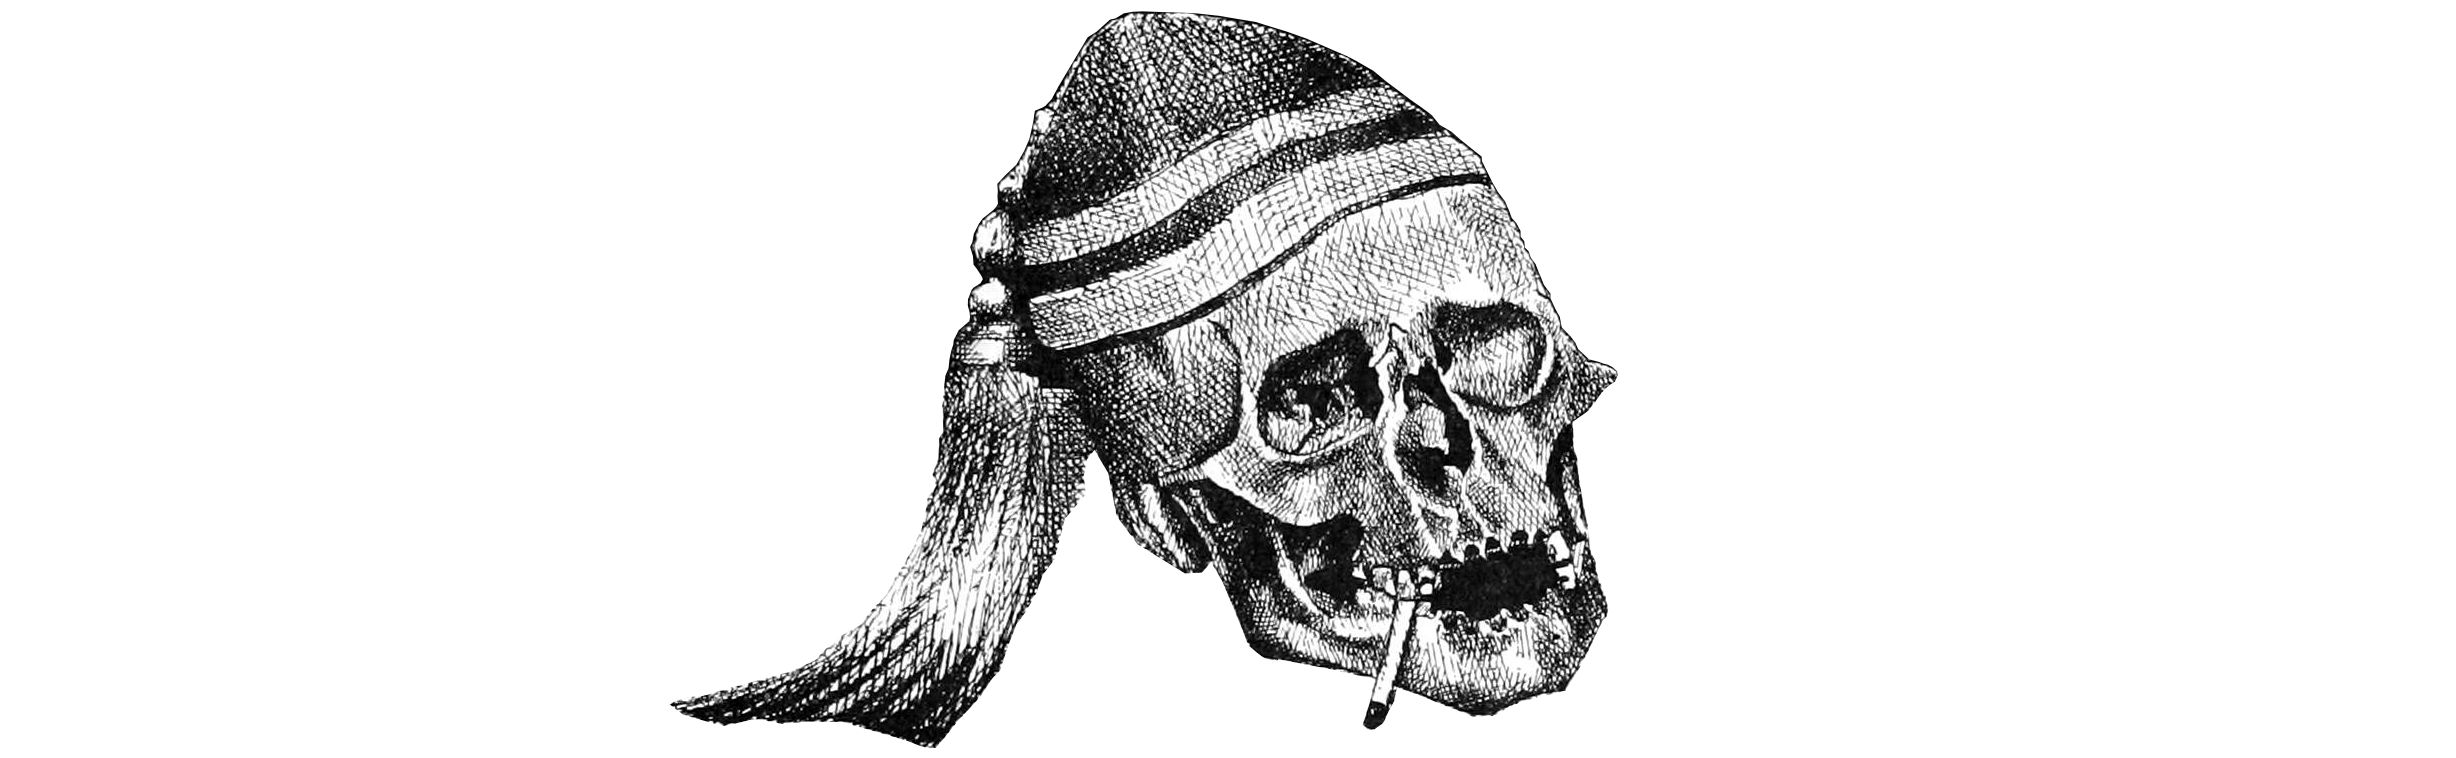 Skull with cap and cigarette